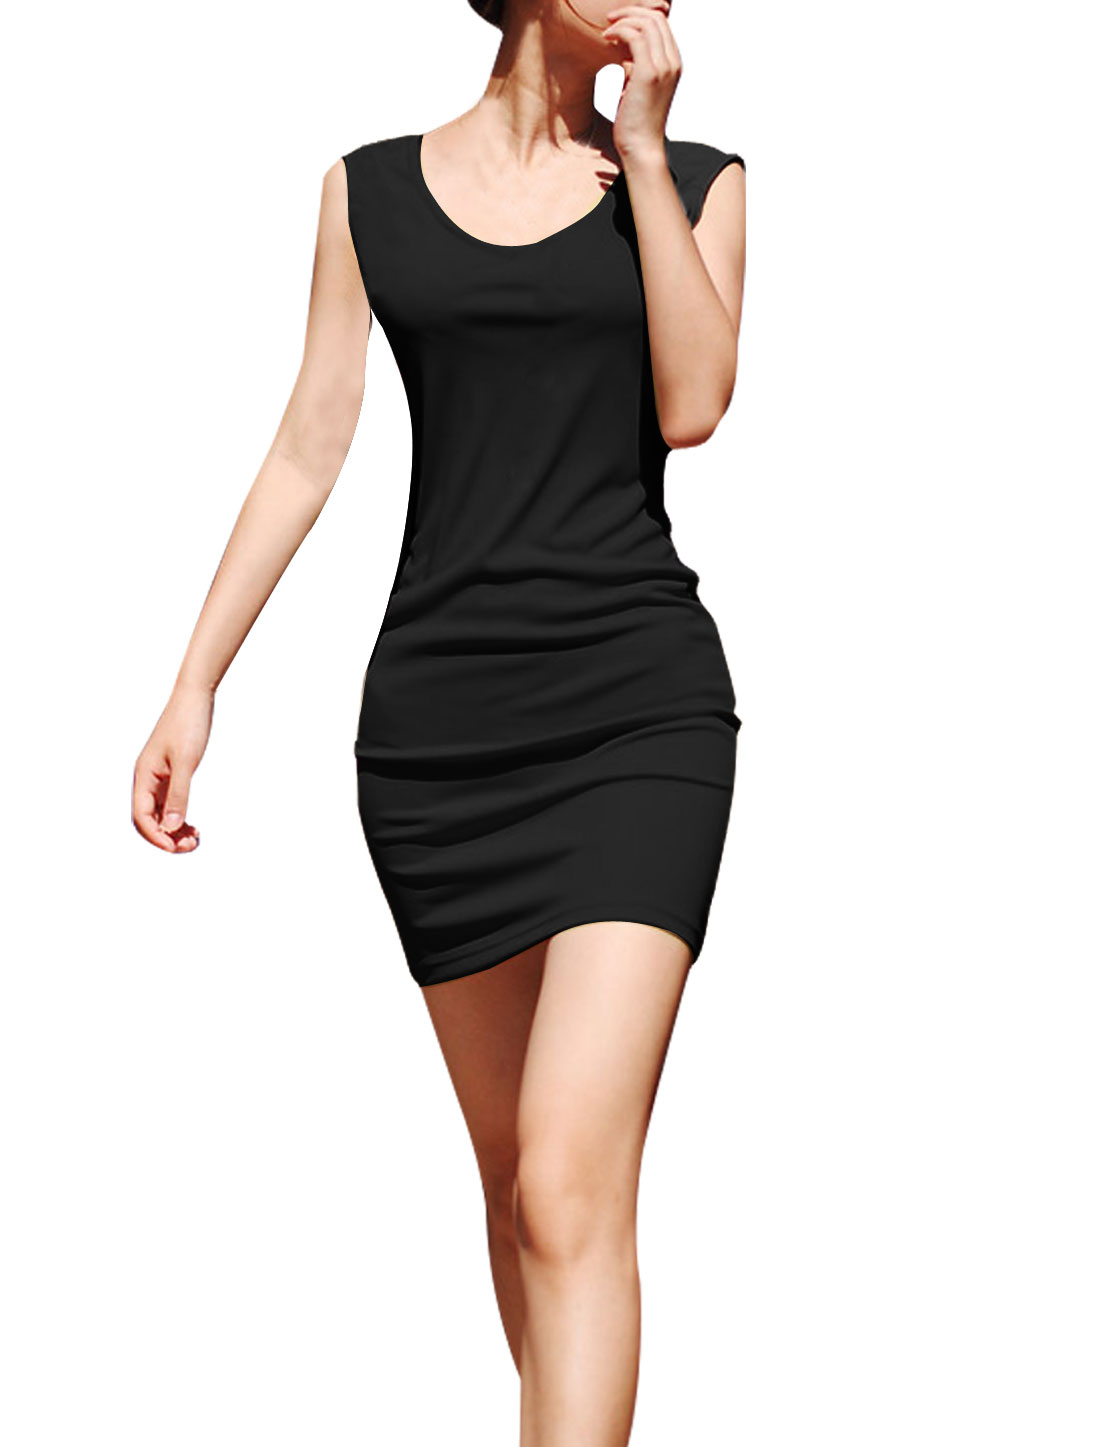 Woman NEW Solid Black V-Neck Slim Fit Mini Tank Dress L